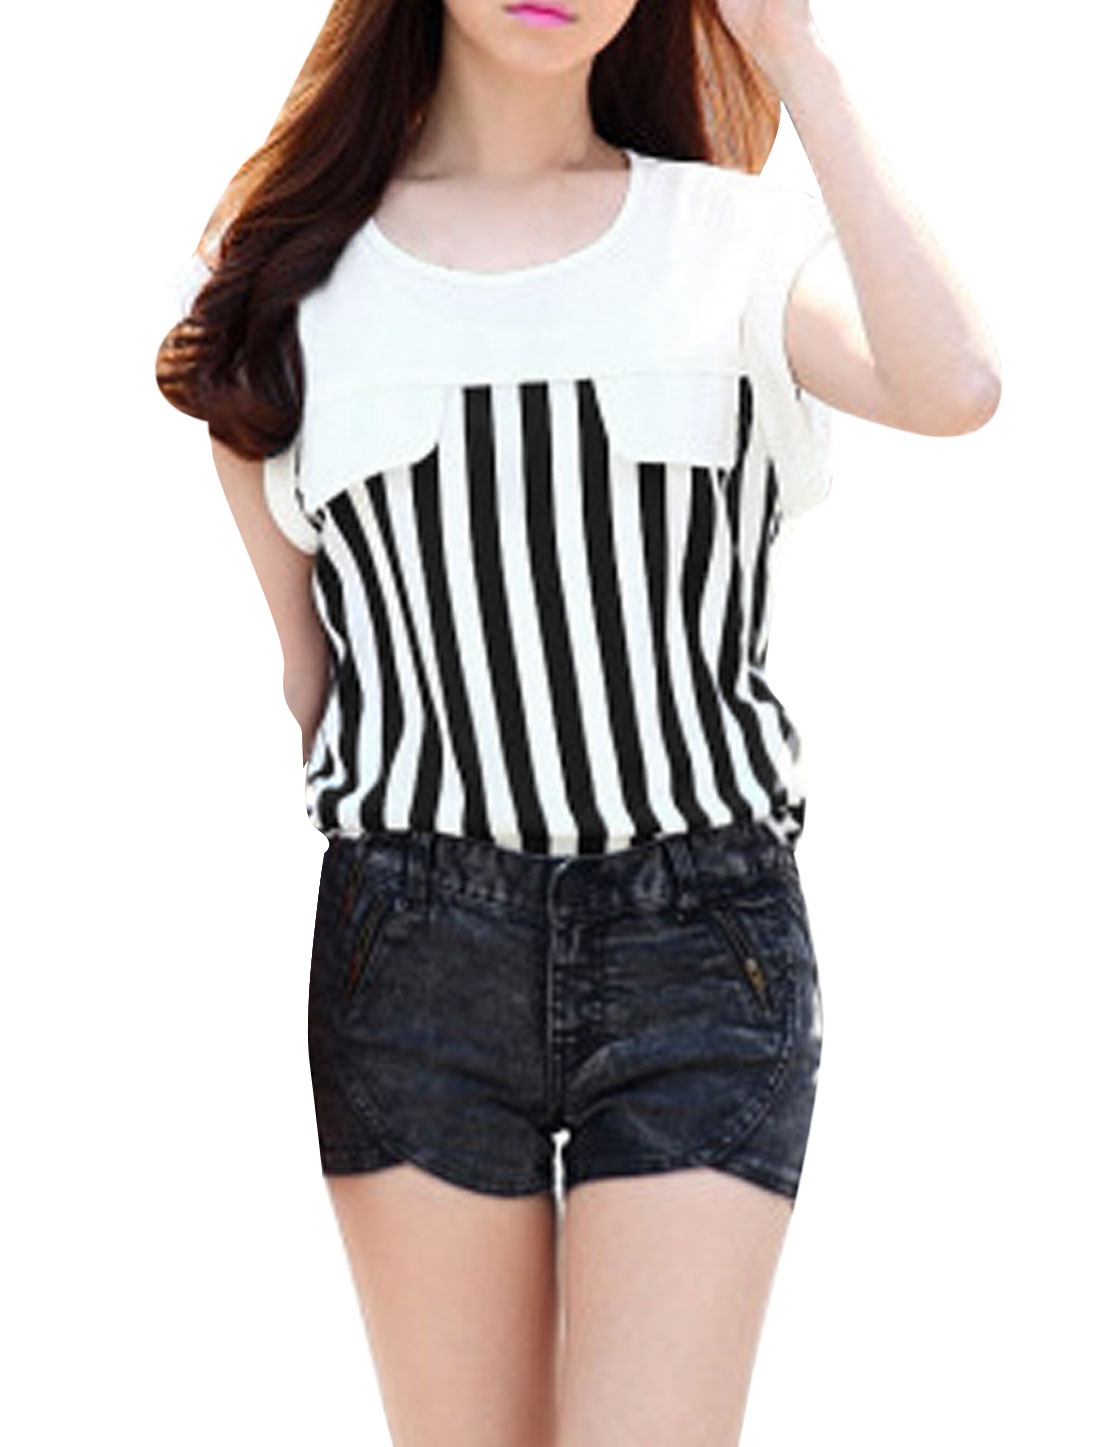 Lady's Sleeveless Vertical Stripes Round Hem Casual Chiffon Top Black S